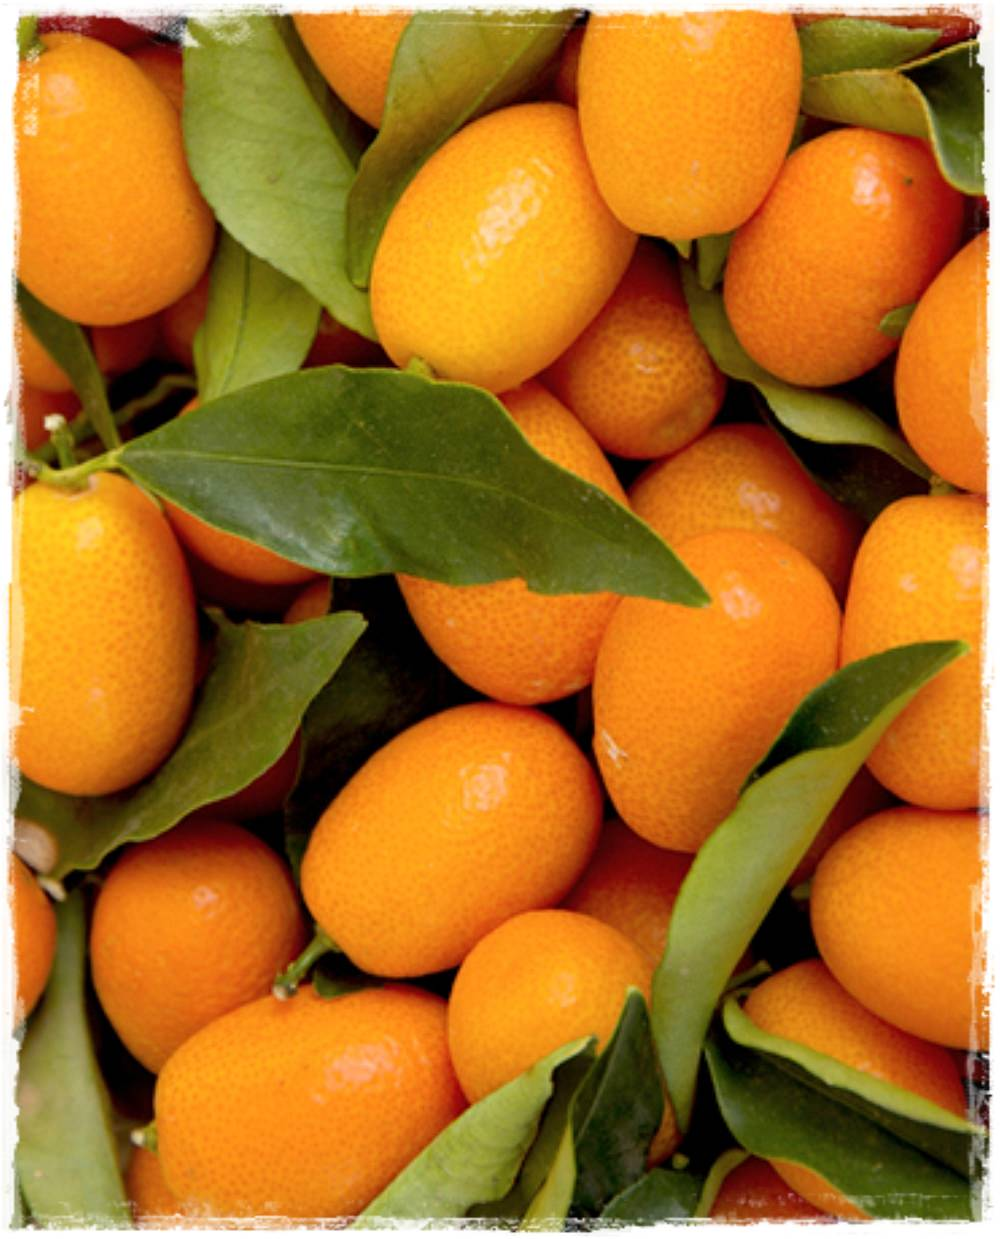 Kumquat ovale citrus fortunella margarita vendita piante for Piante agrumi online